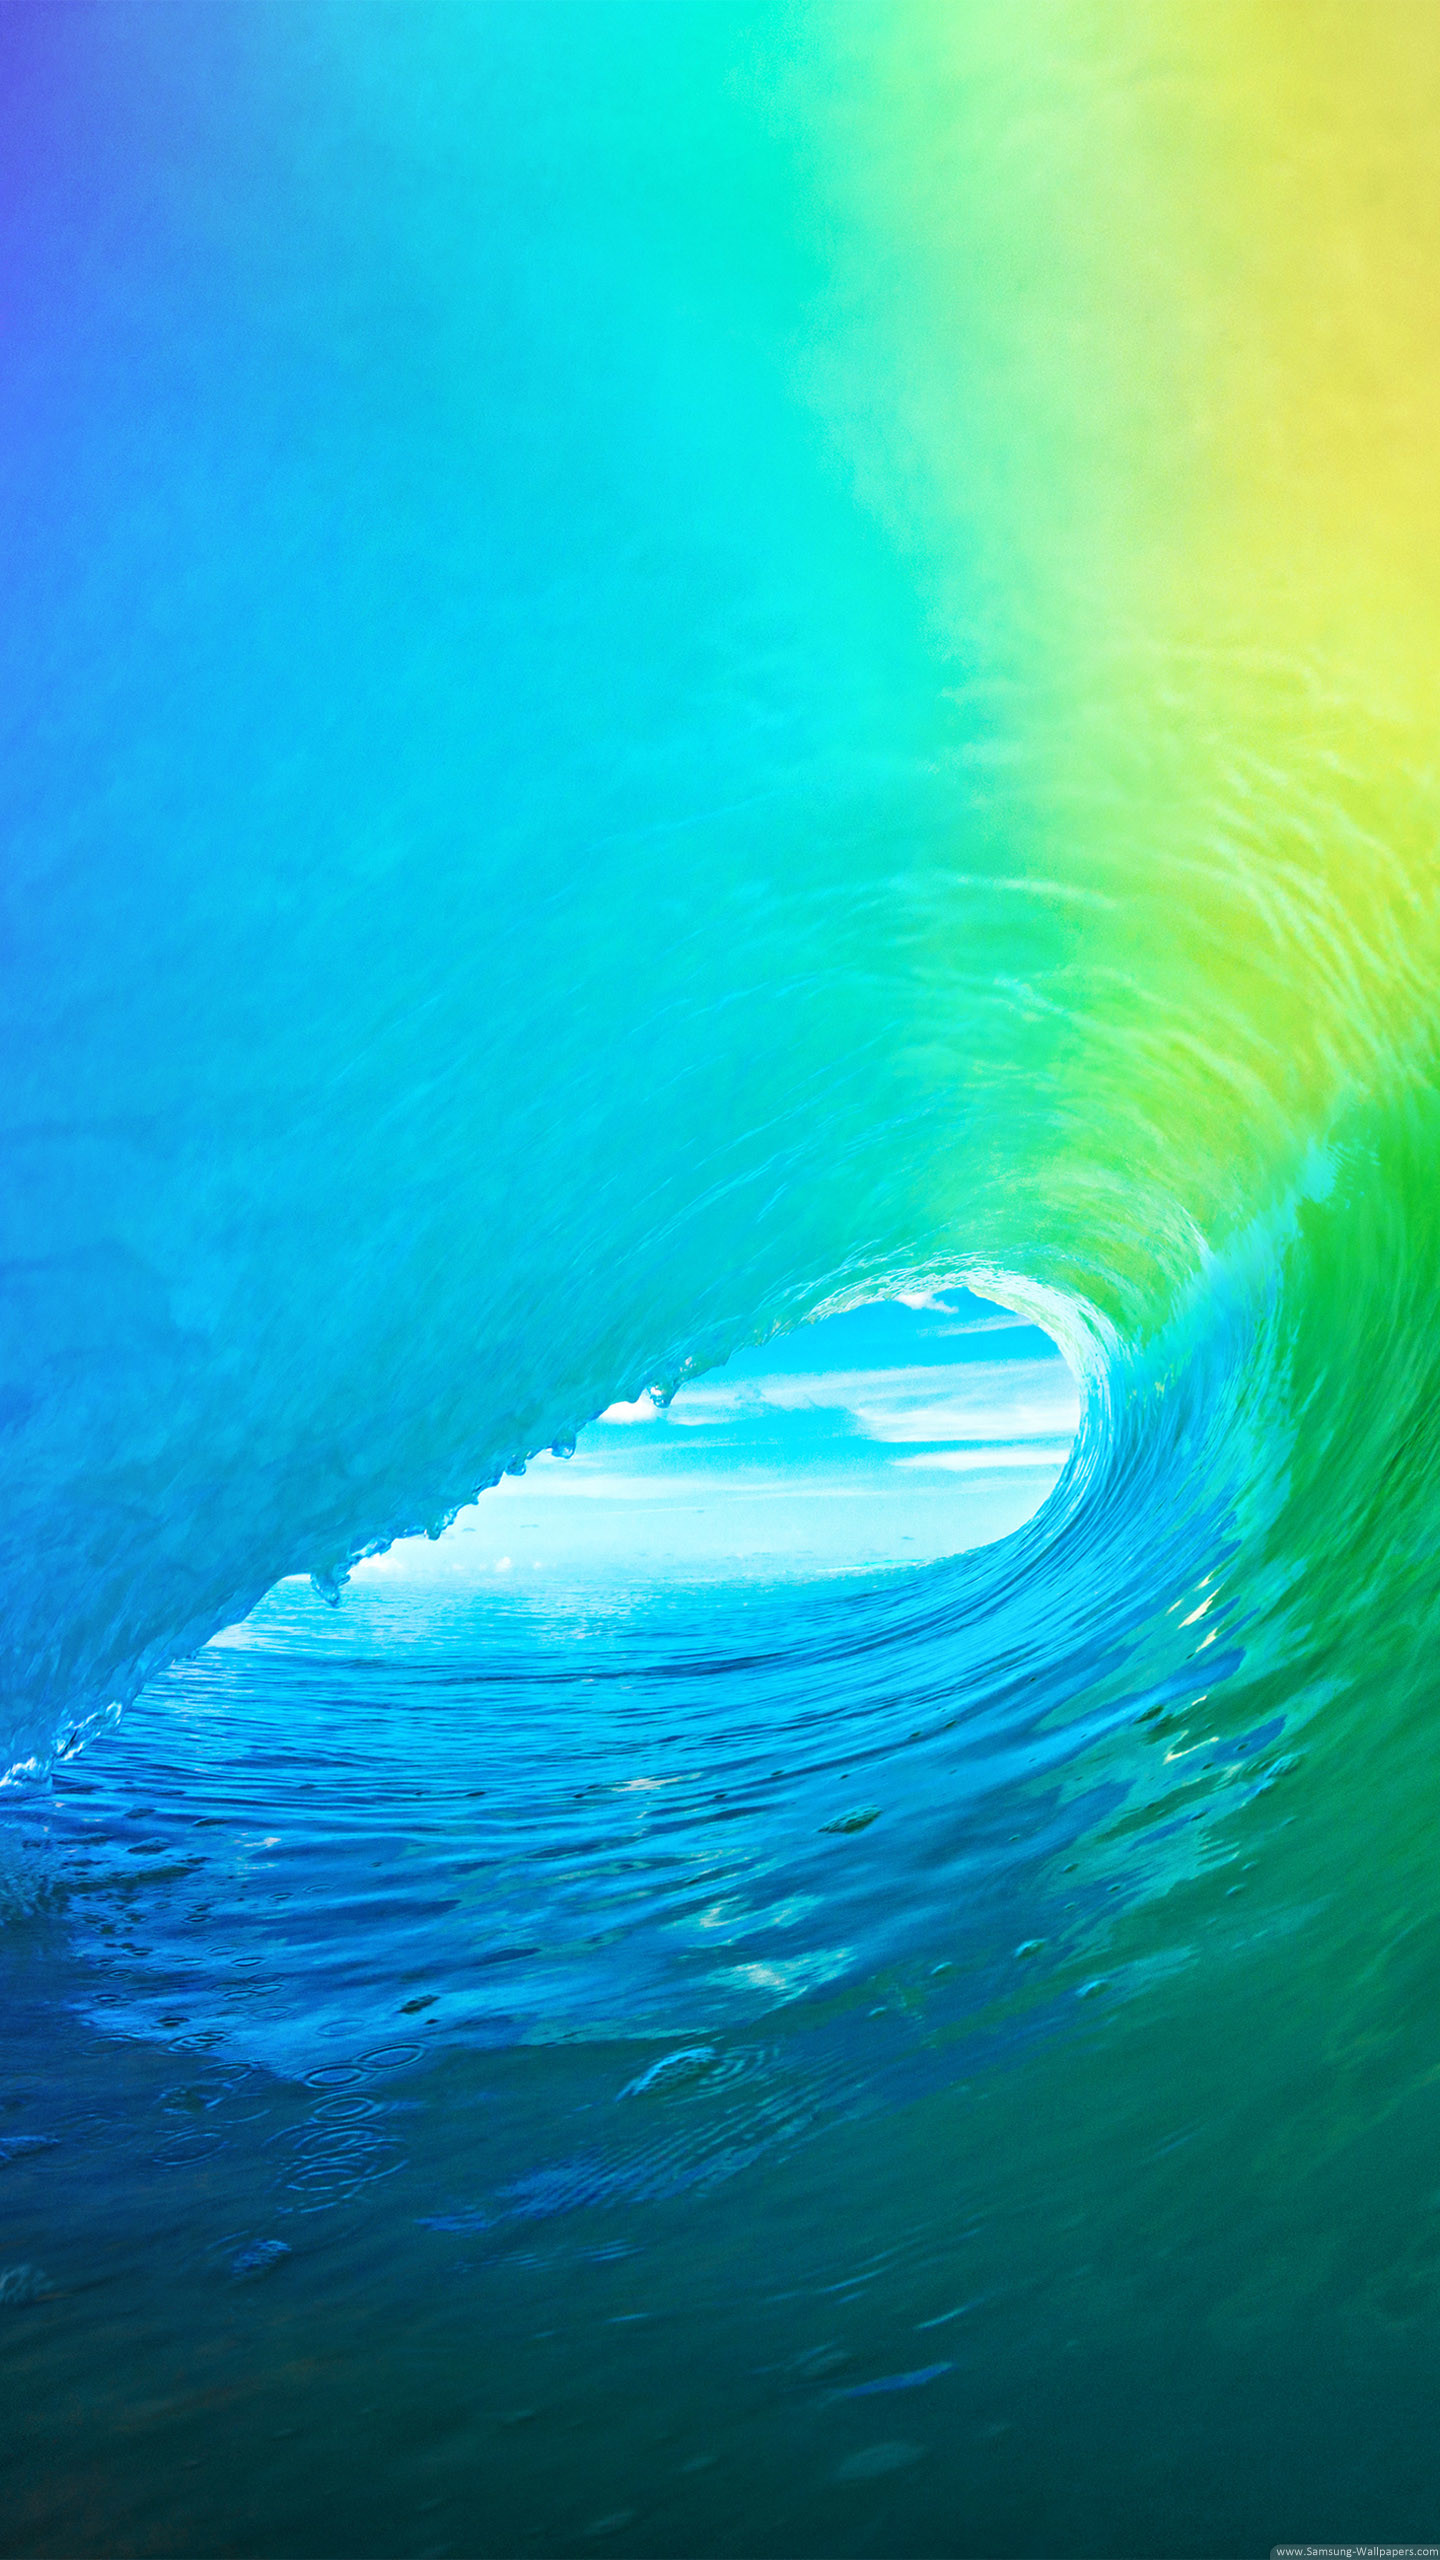 Samsung Galaxy S6 Plus Note Edge Wallpapers Designsmag - Ios 9 Wallpaper Iphone 6 , HD Wallpaper & Backgrounds